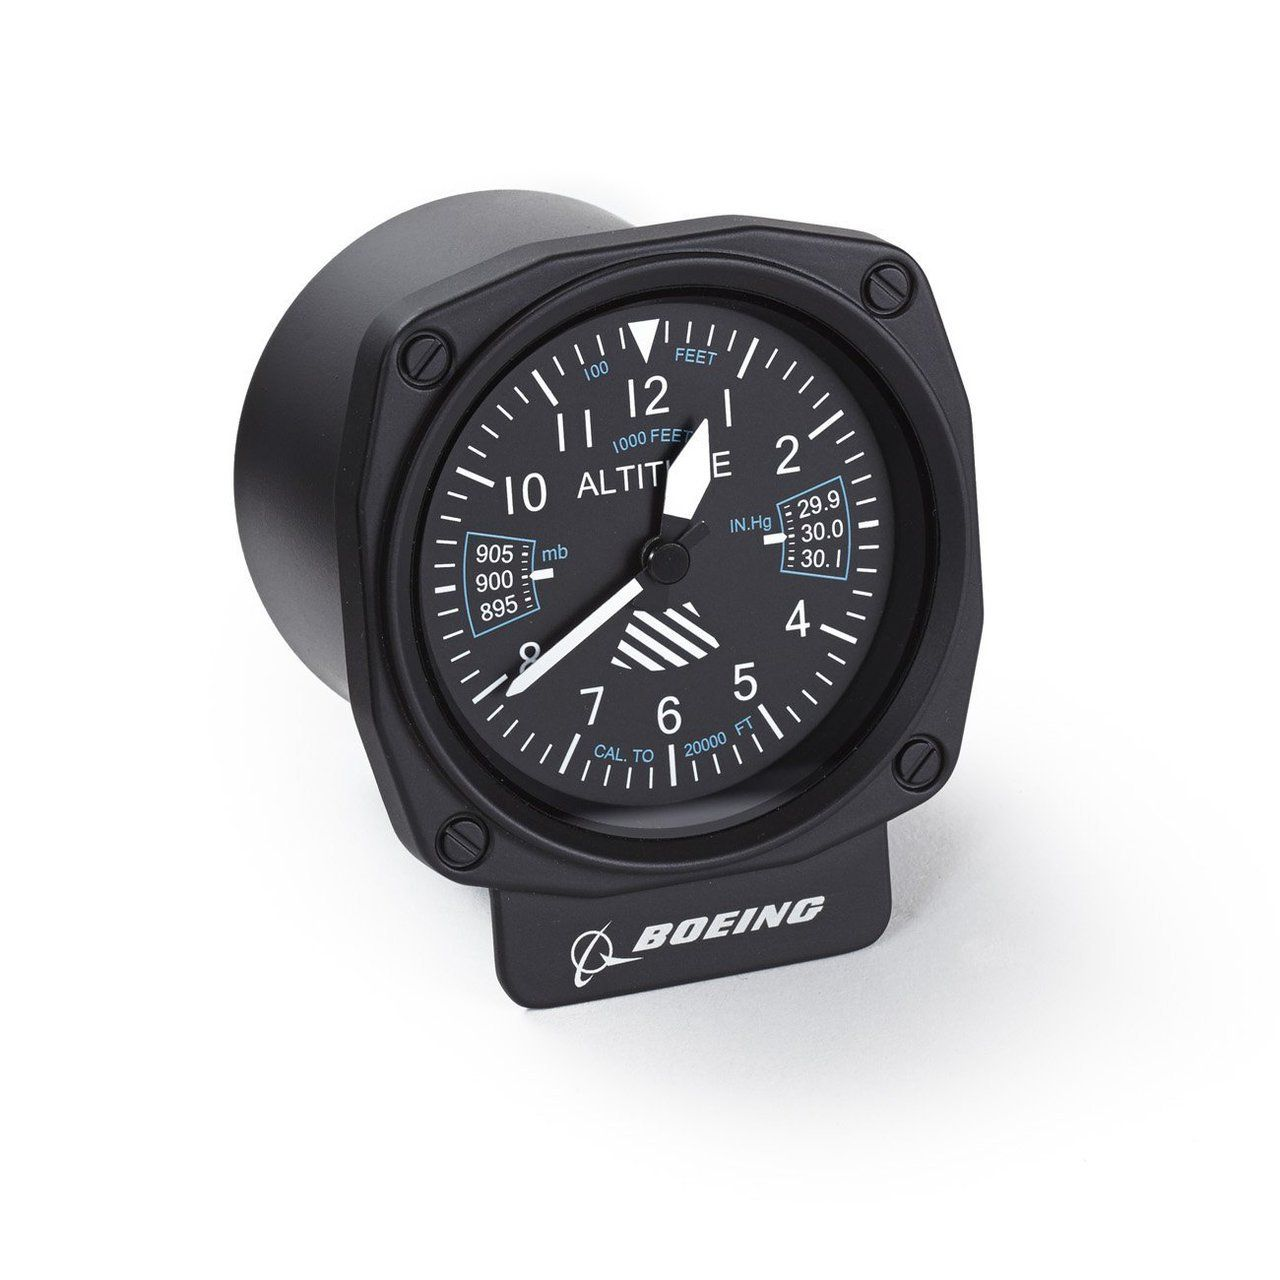 Watch Time Fly With This Desk Clock That S Cleverly Designed To Look Like A Genuine Airplane Altimeter Keep Track Of While Experiencing The Excitement